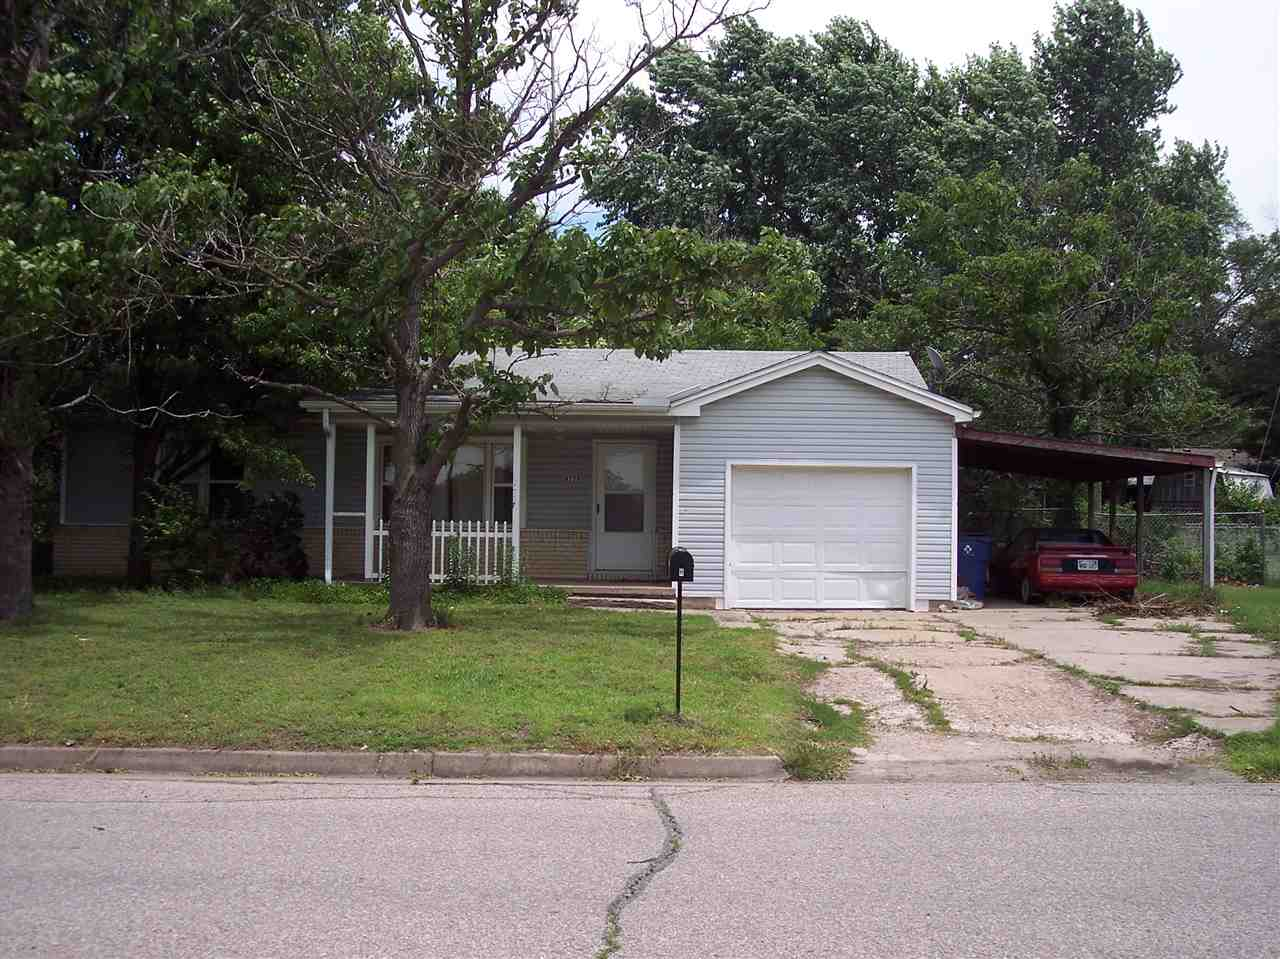 Great investment opportunity.  Close to restaurants and 135.  Seller would like to sell the property